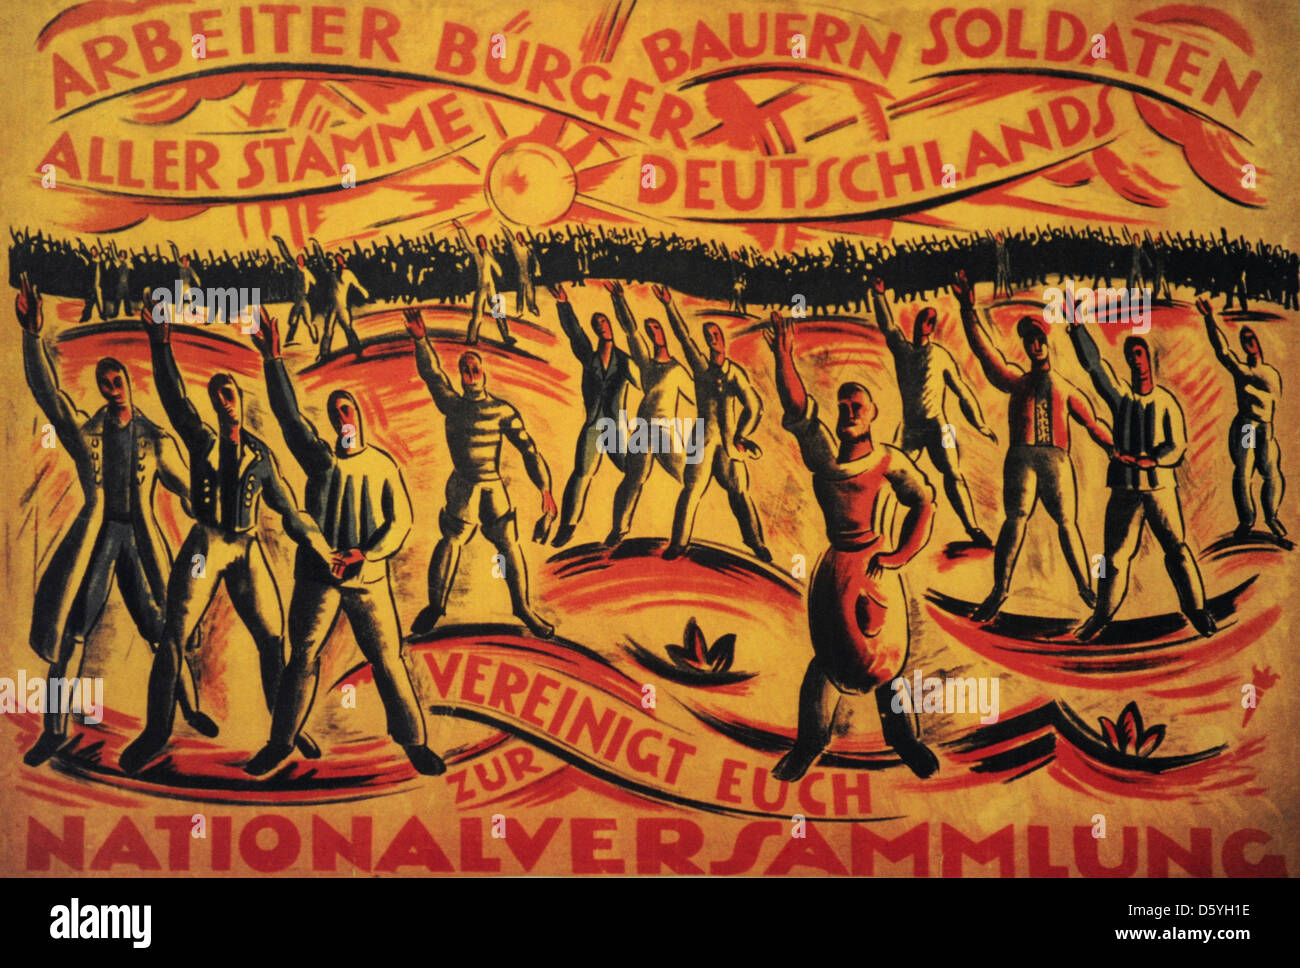 Poster for the National Assembly elections. January 19, 1919. - Stock Image